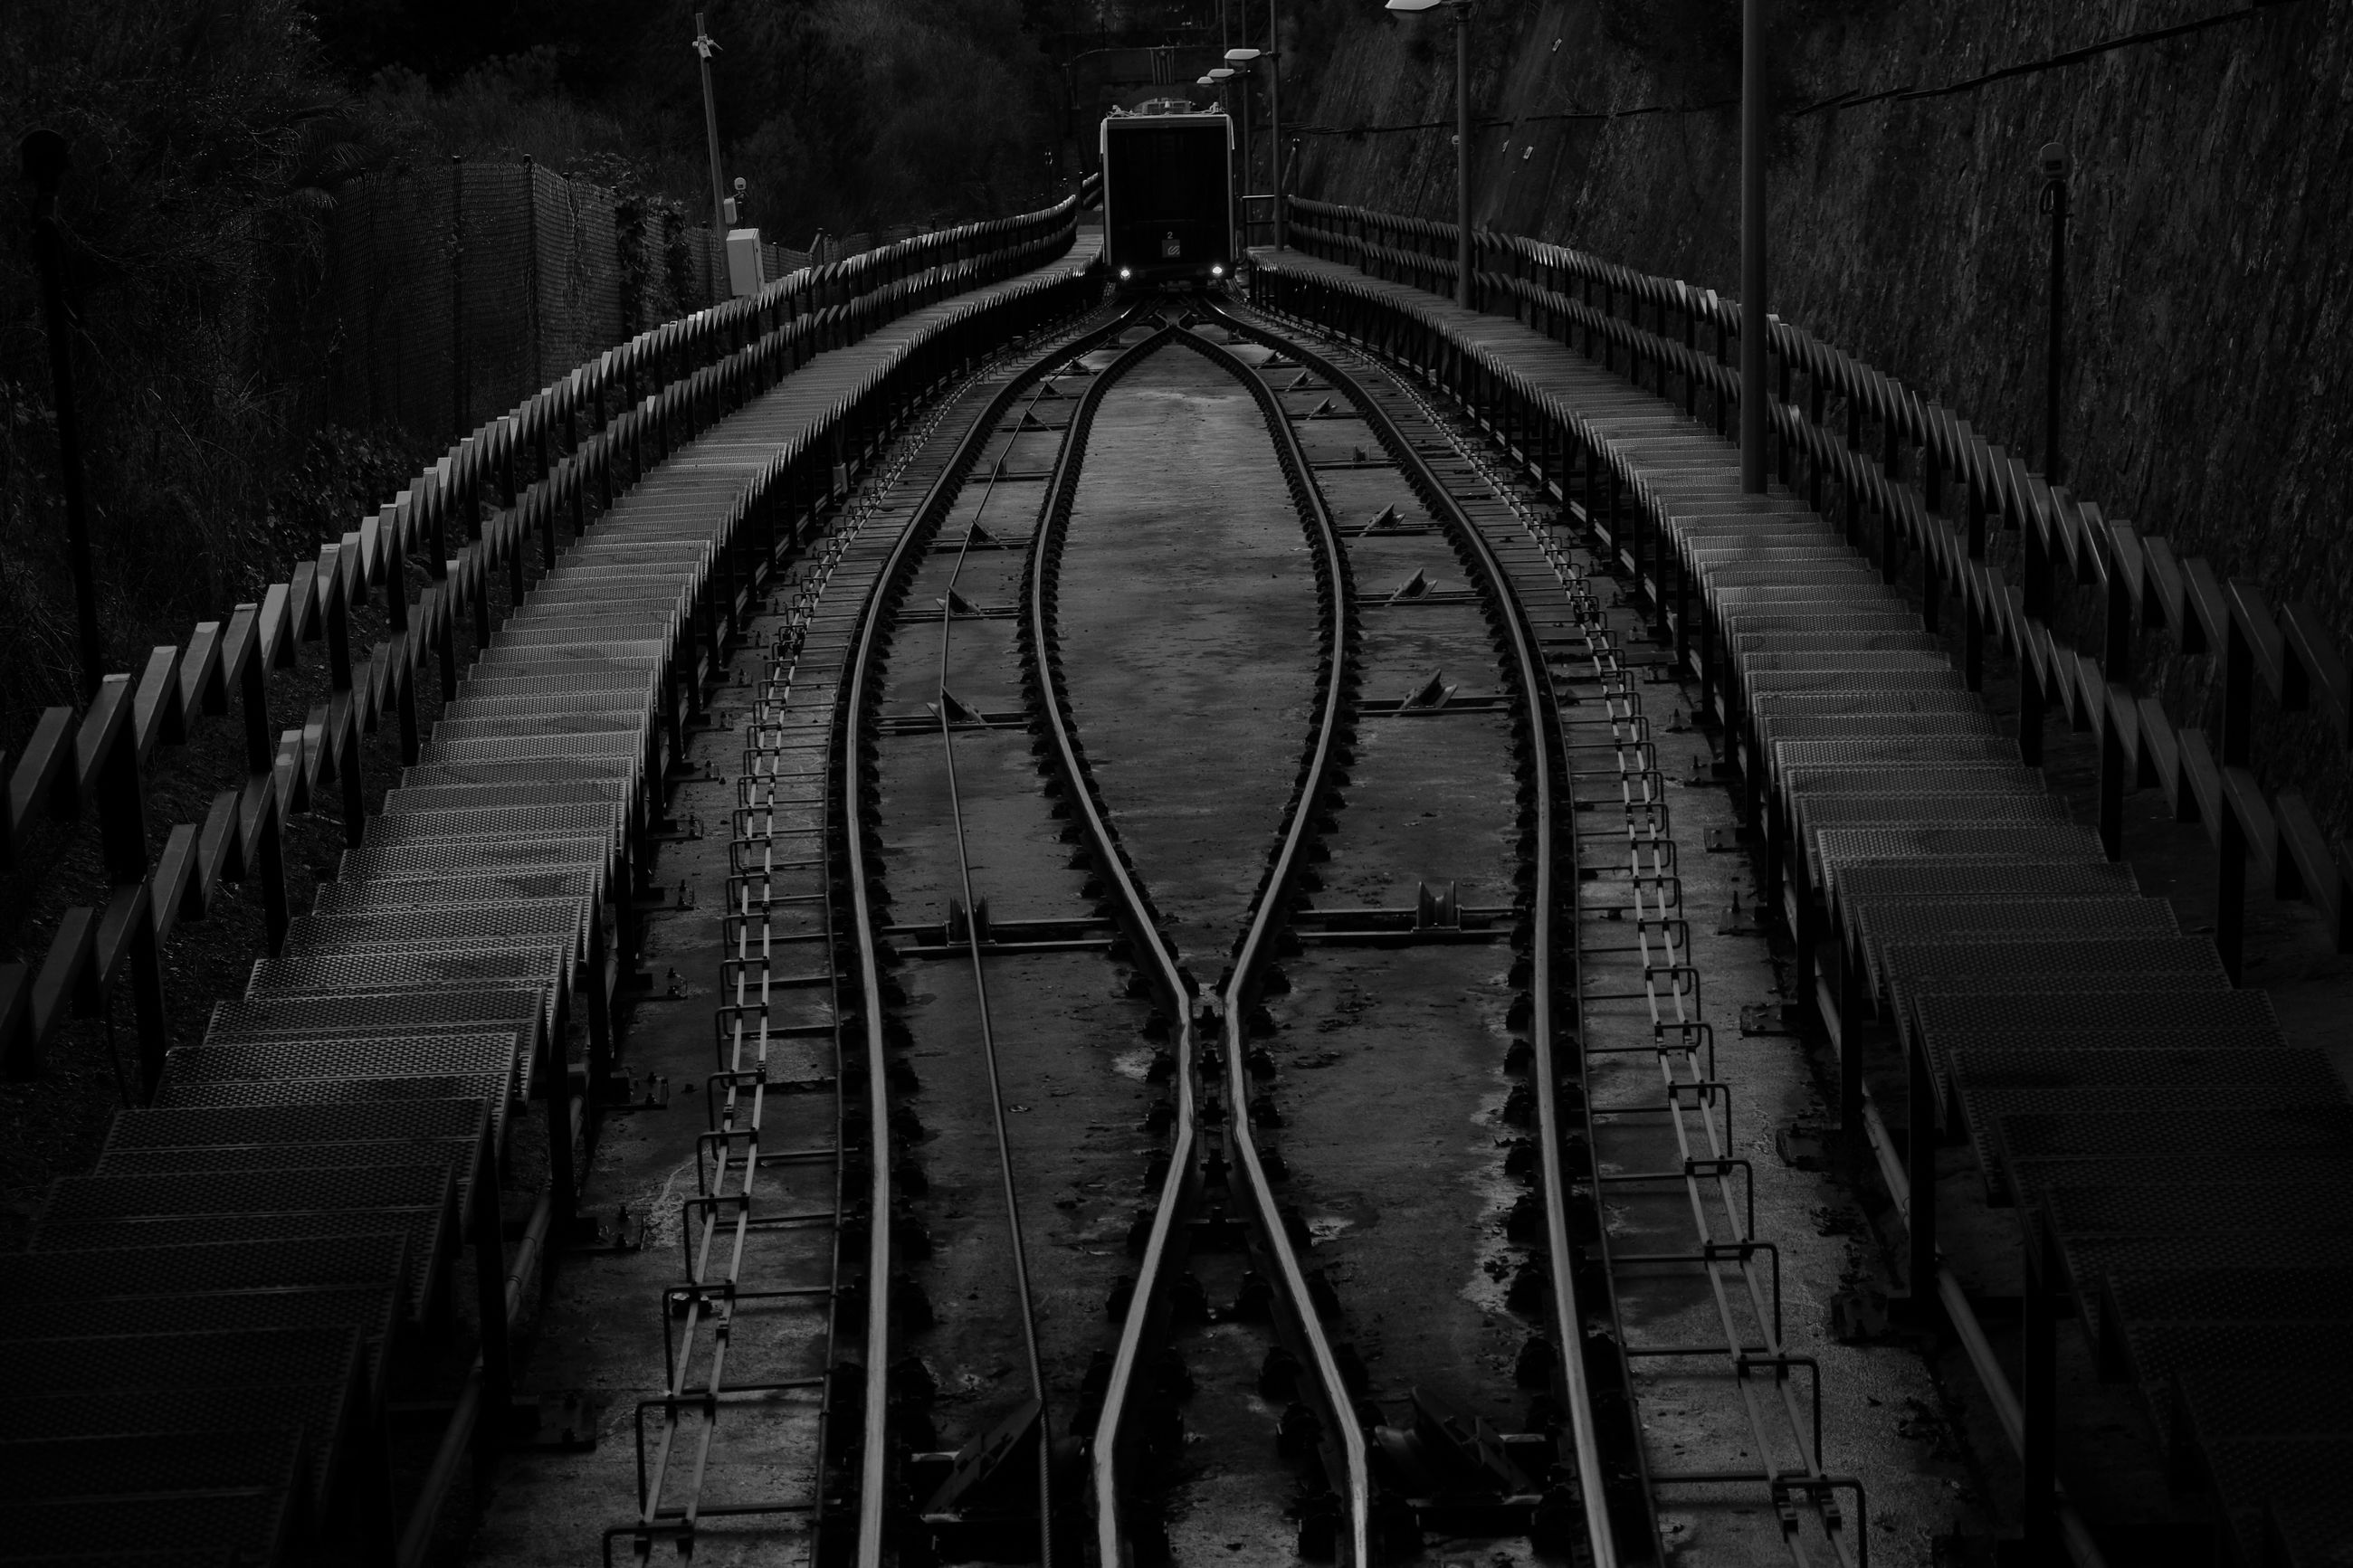 rail transportation, track, railroad track, transportation, the way forward, direction, no people, public transportation, mode of transportation, architecture, high angle view, travel, diminishing perspective, built structure, metal, connection, in a row, outdoors, curve, tree, shunting yard, long